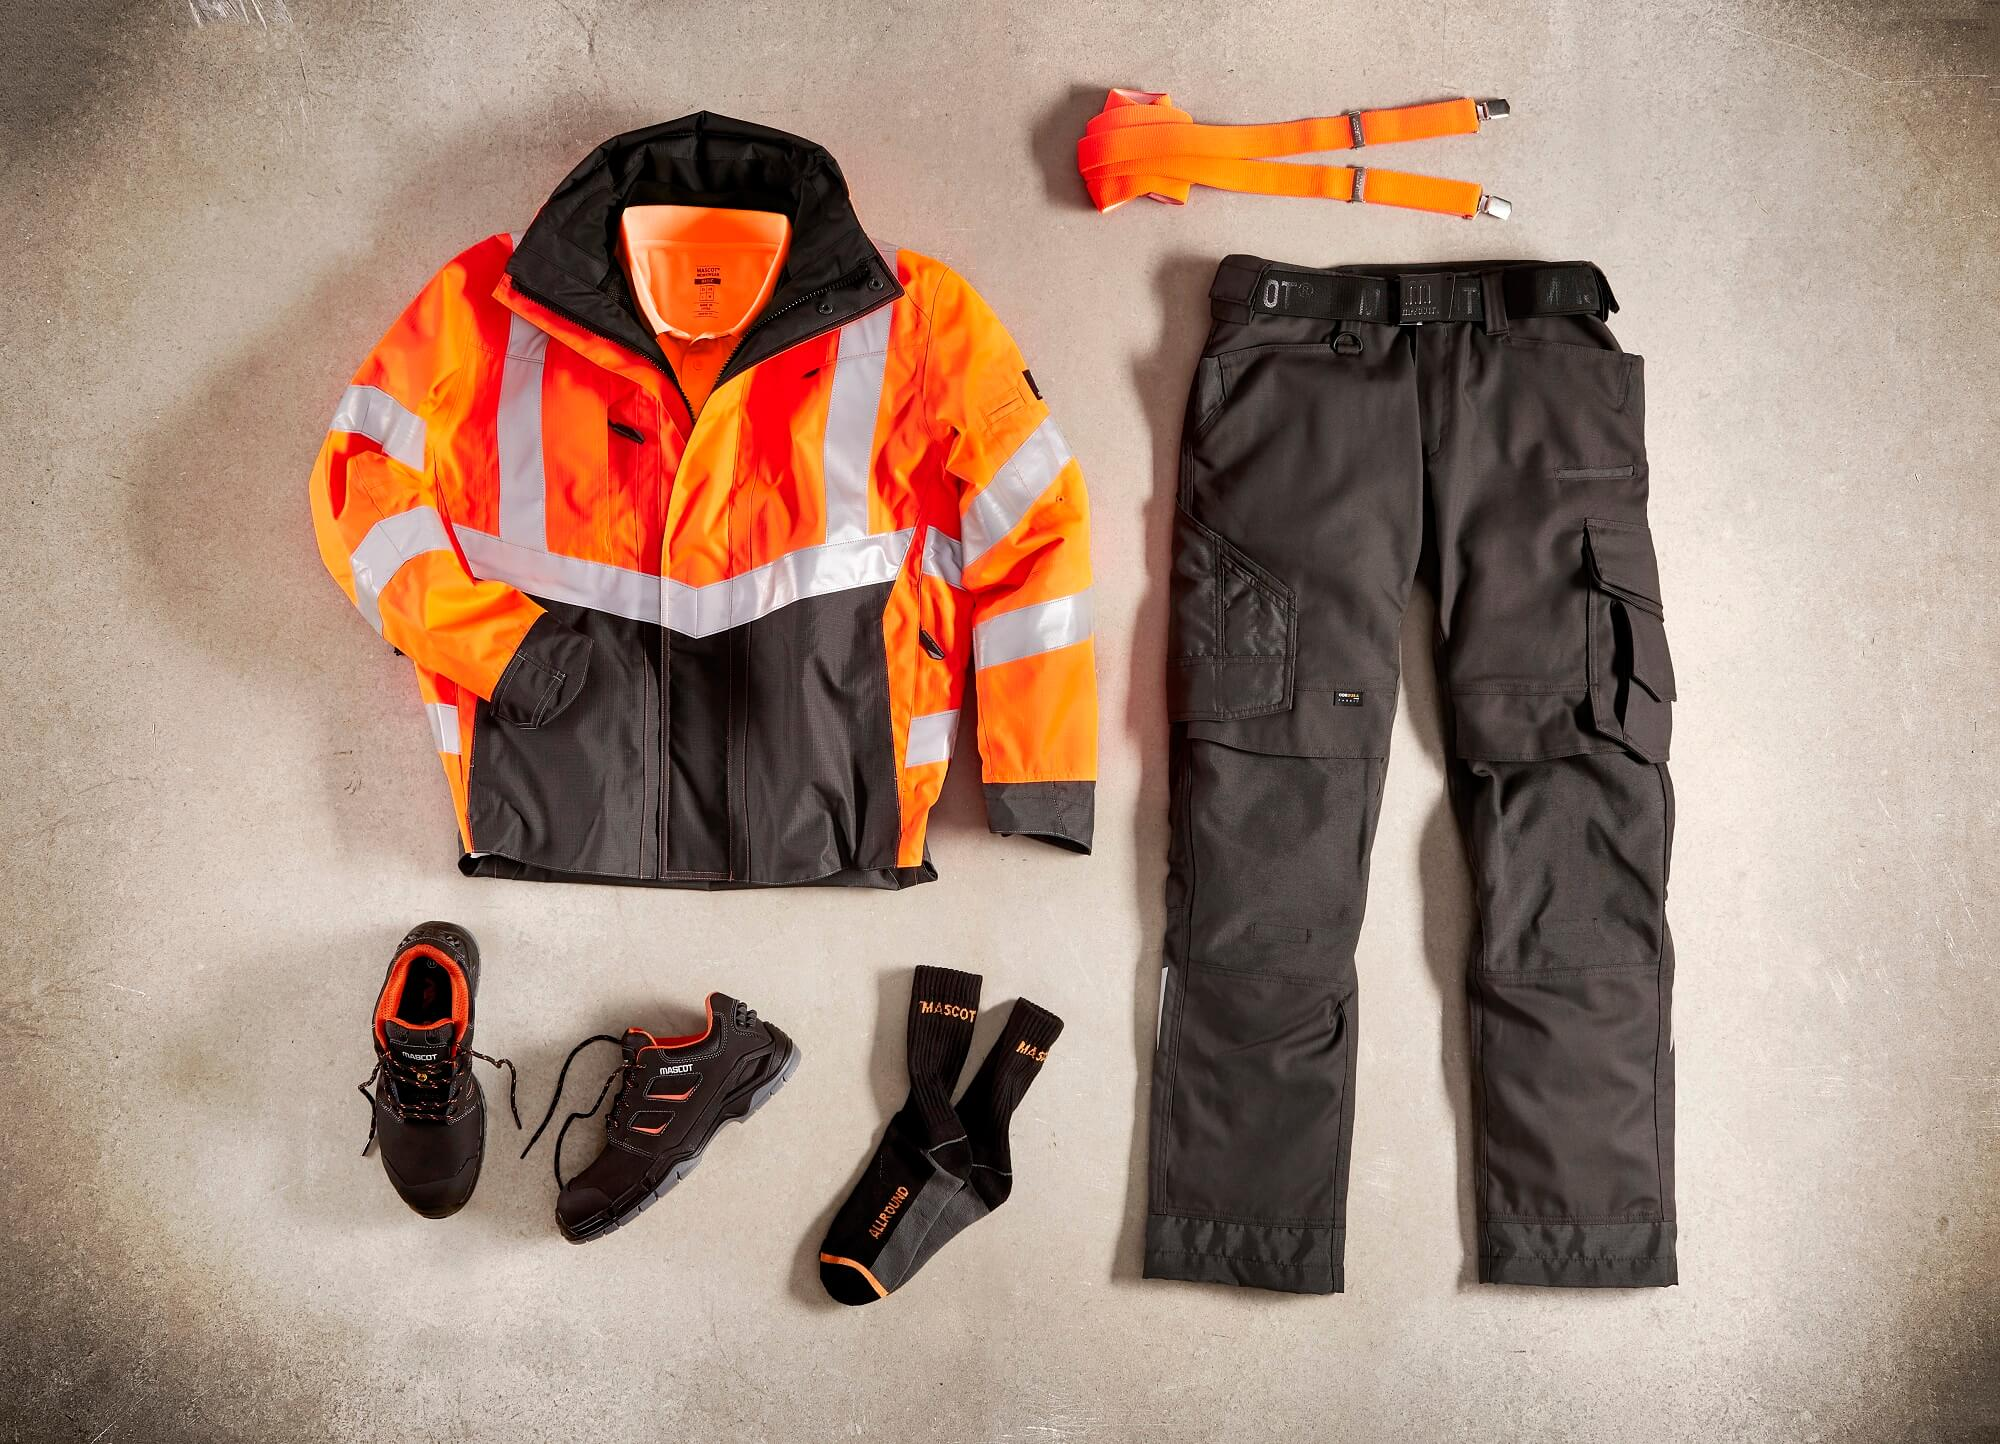 Collage - Hi-vis Jacket, Pants, Socks & Safety Shoe - Fluorescent orange